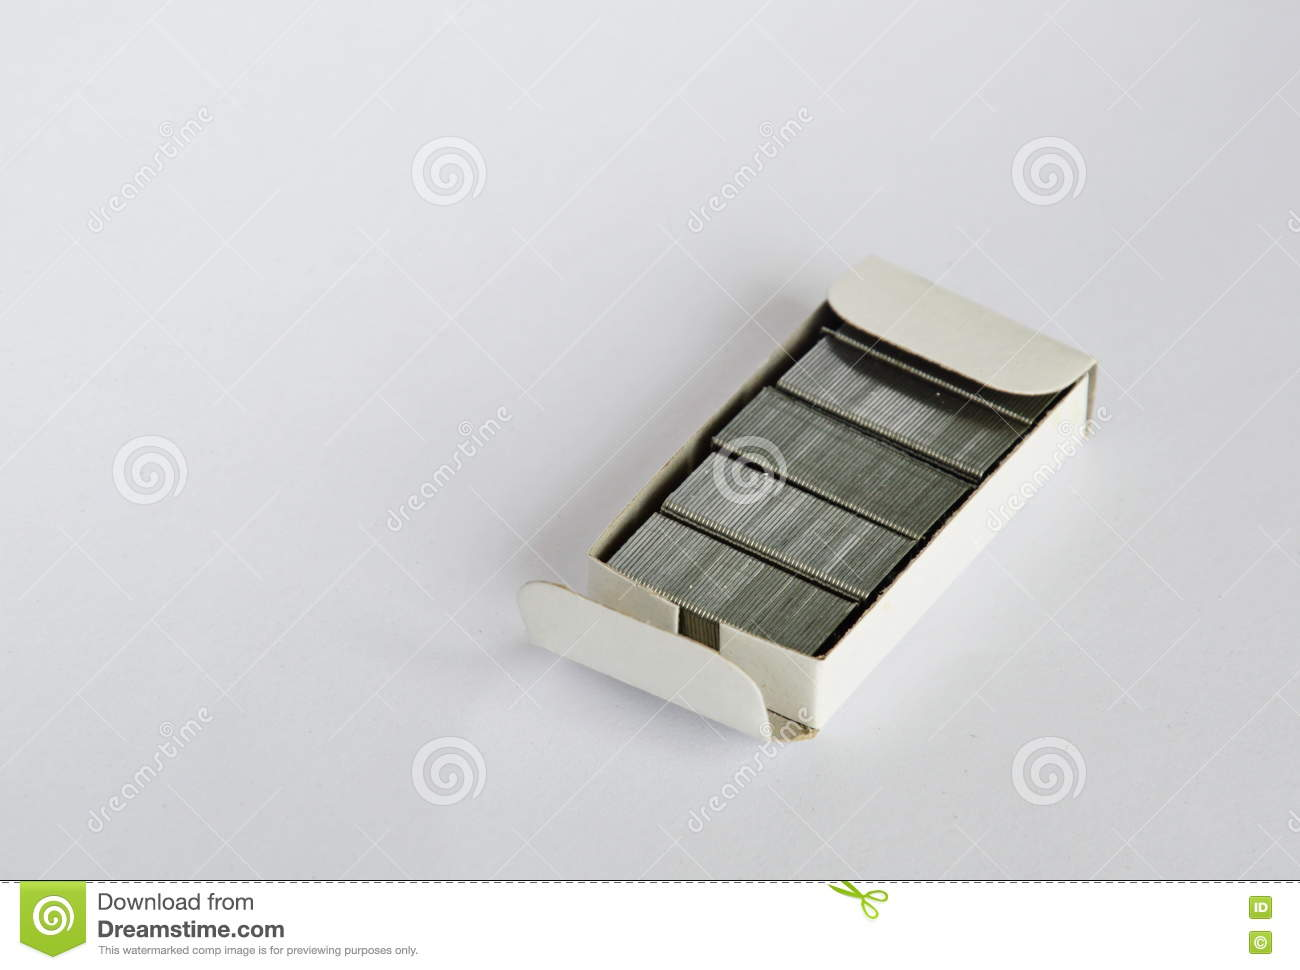 Stapler Wire In Box On White Background Stock Photo - Image of ...